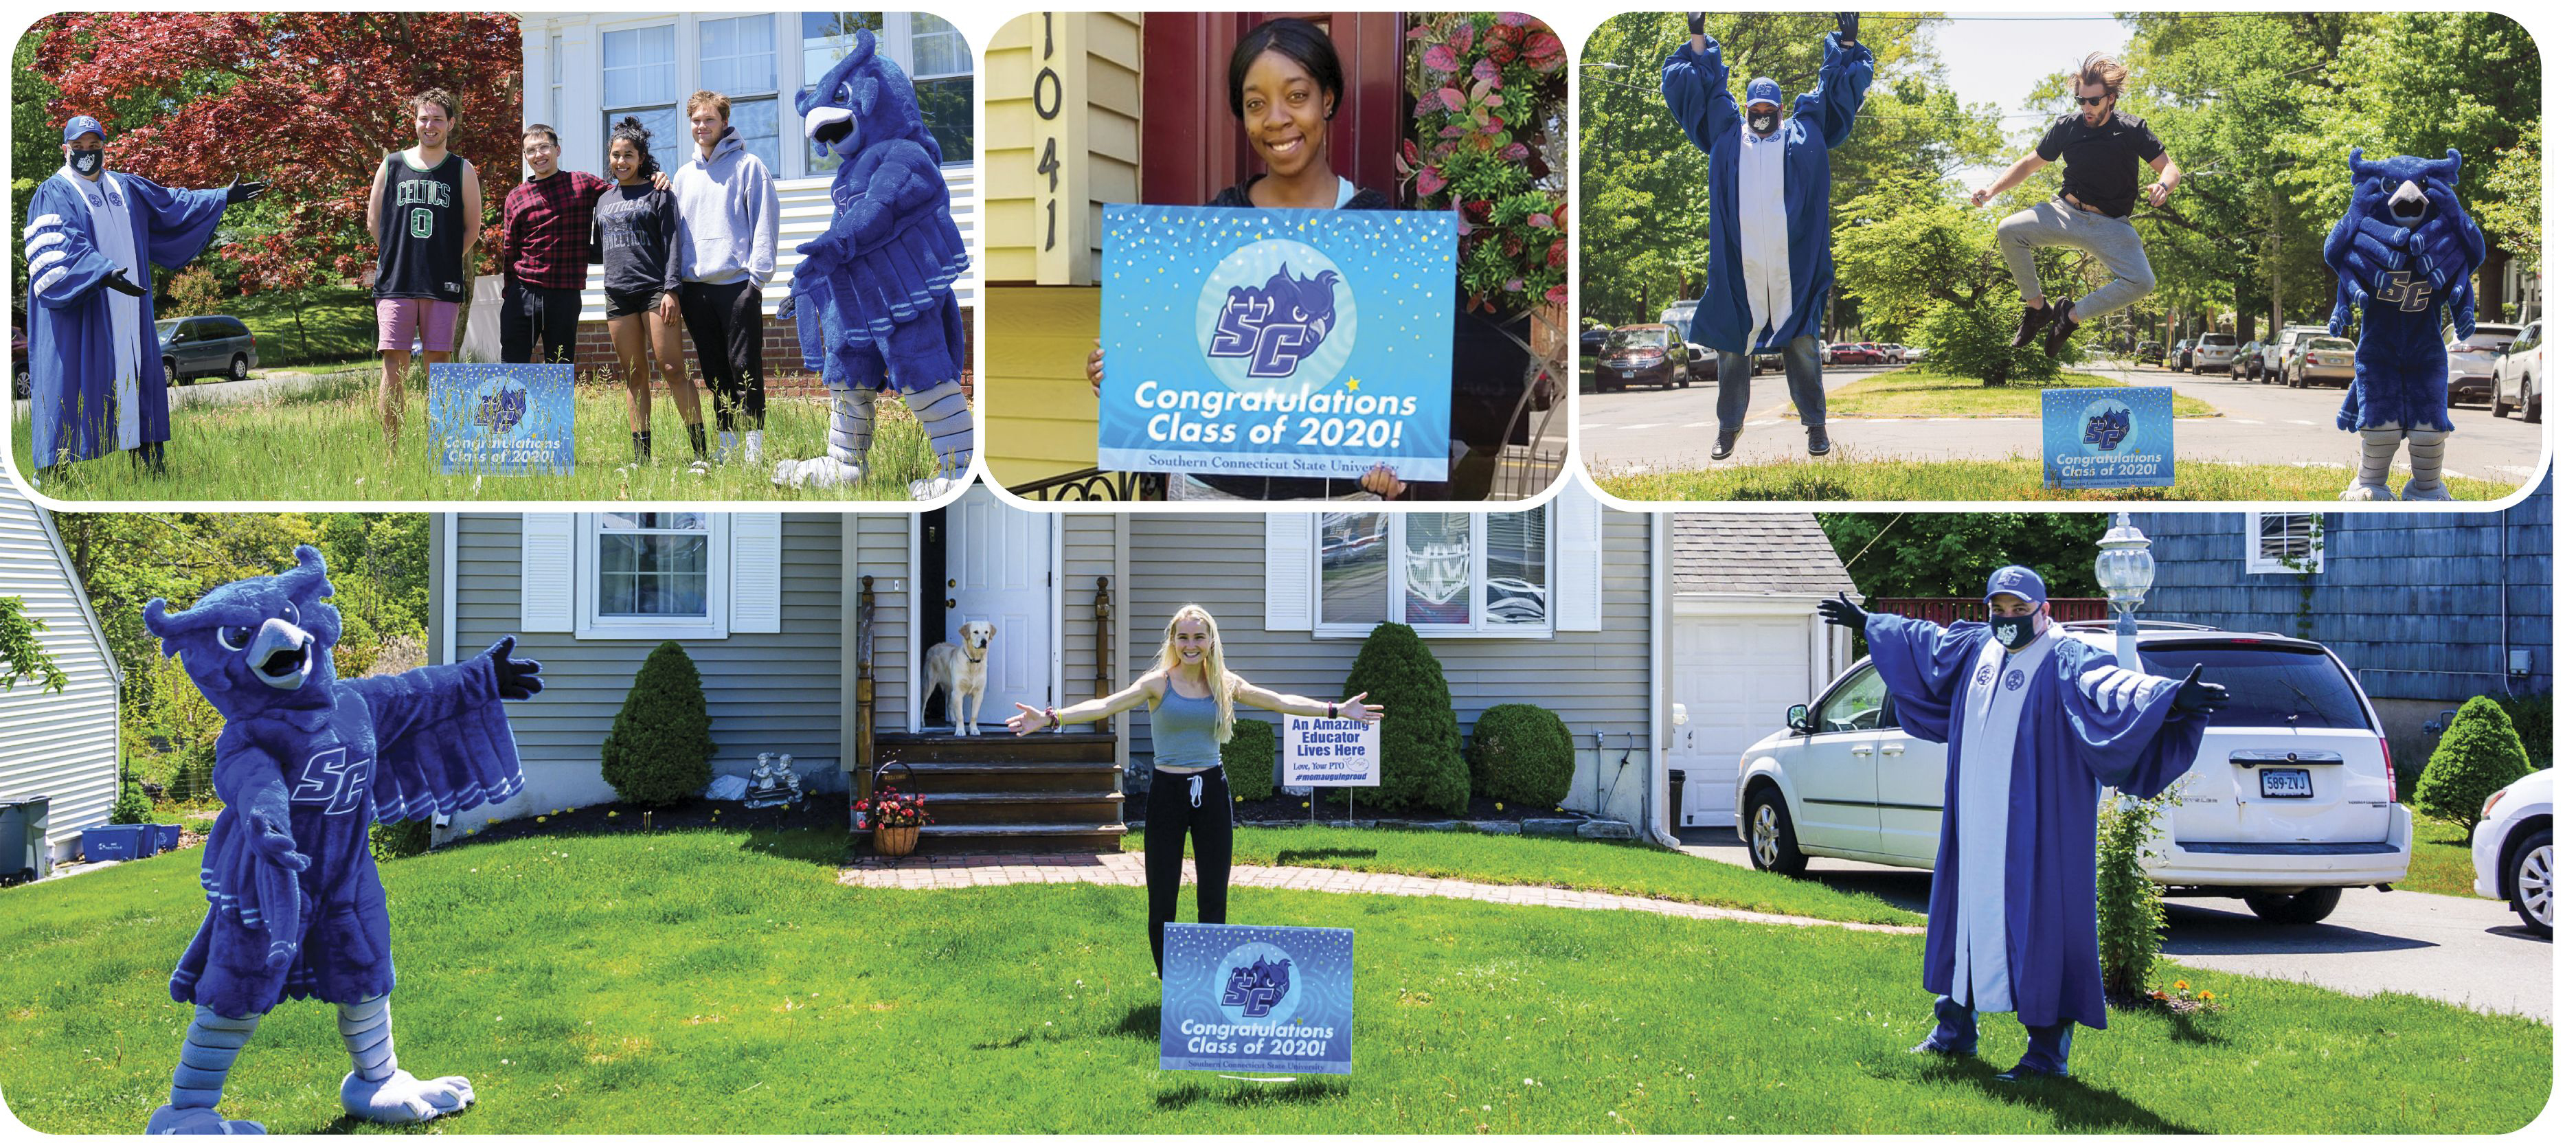 SCSU President Joe Bertolino and volunteers deliver lawn signs to 2020 future graduates